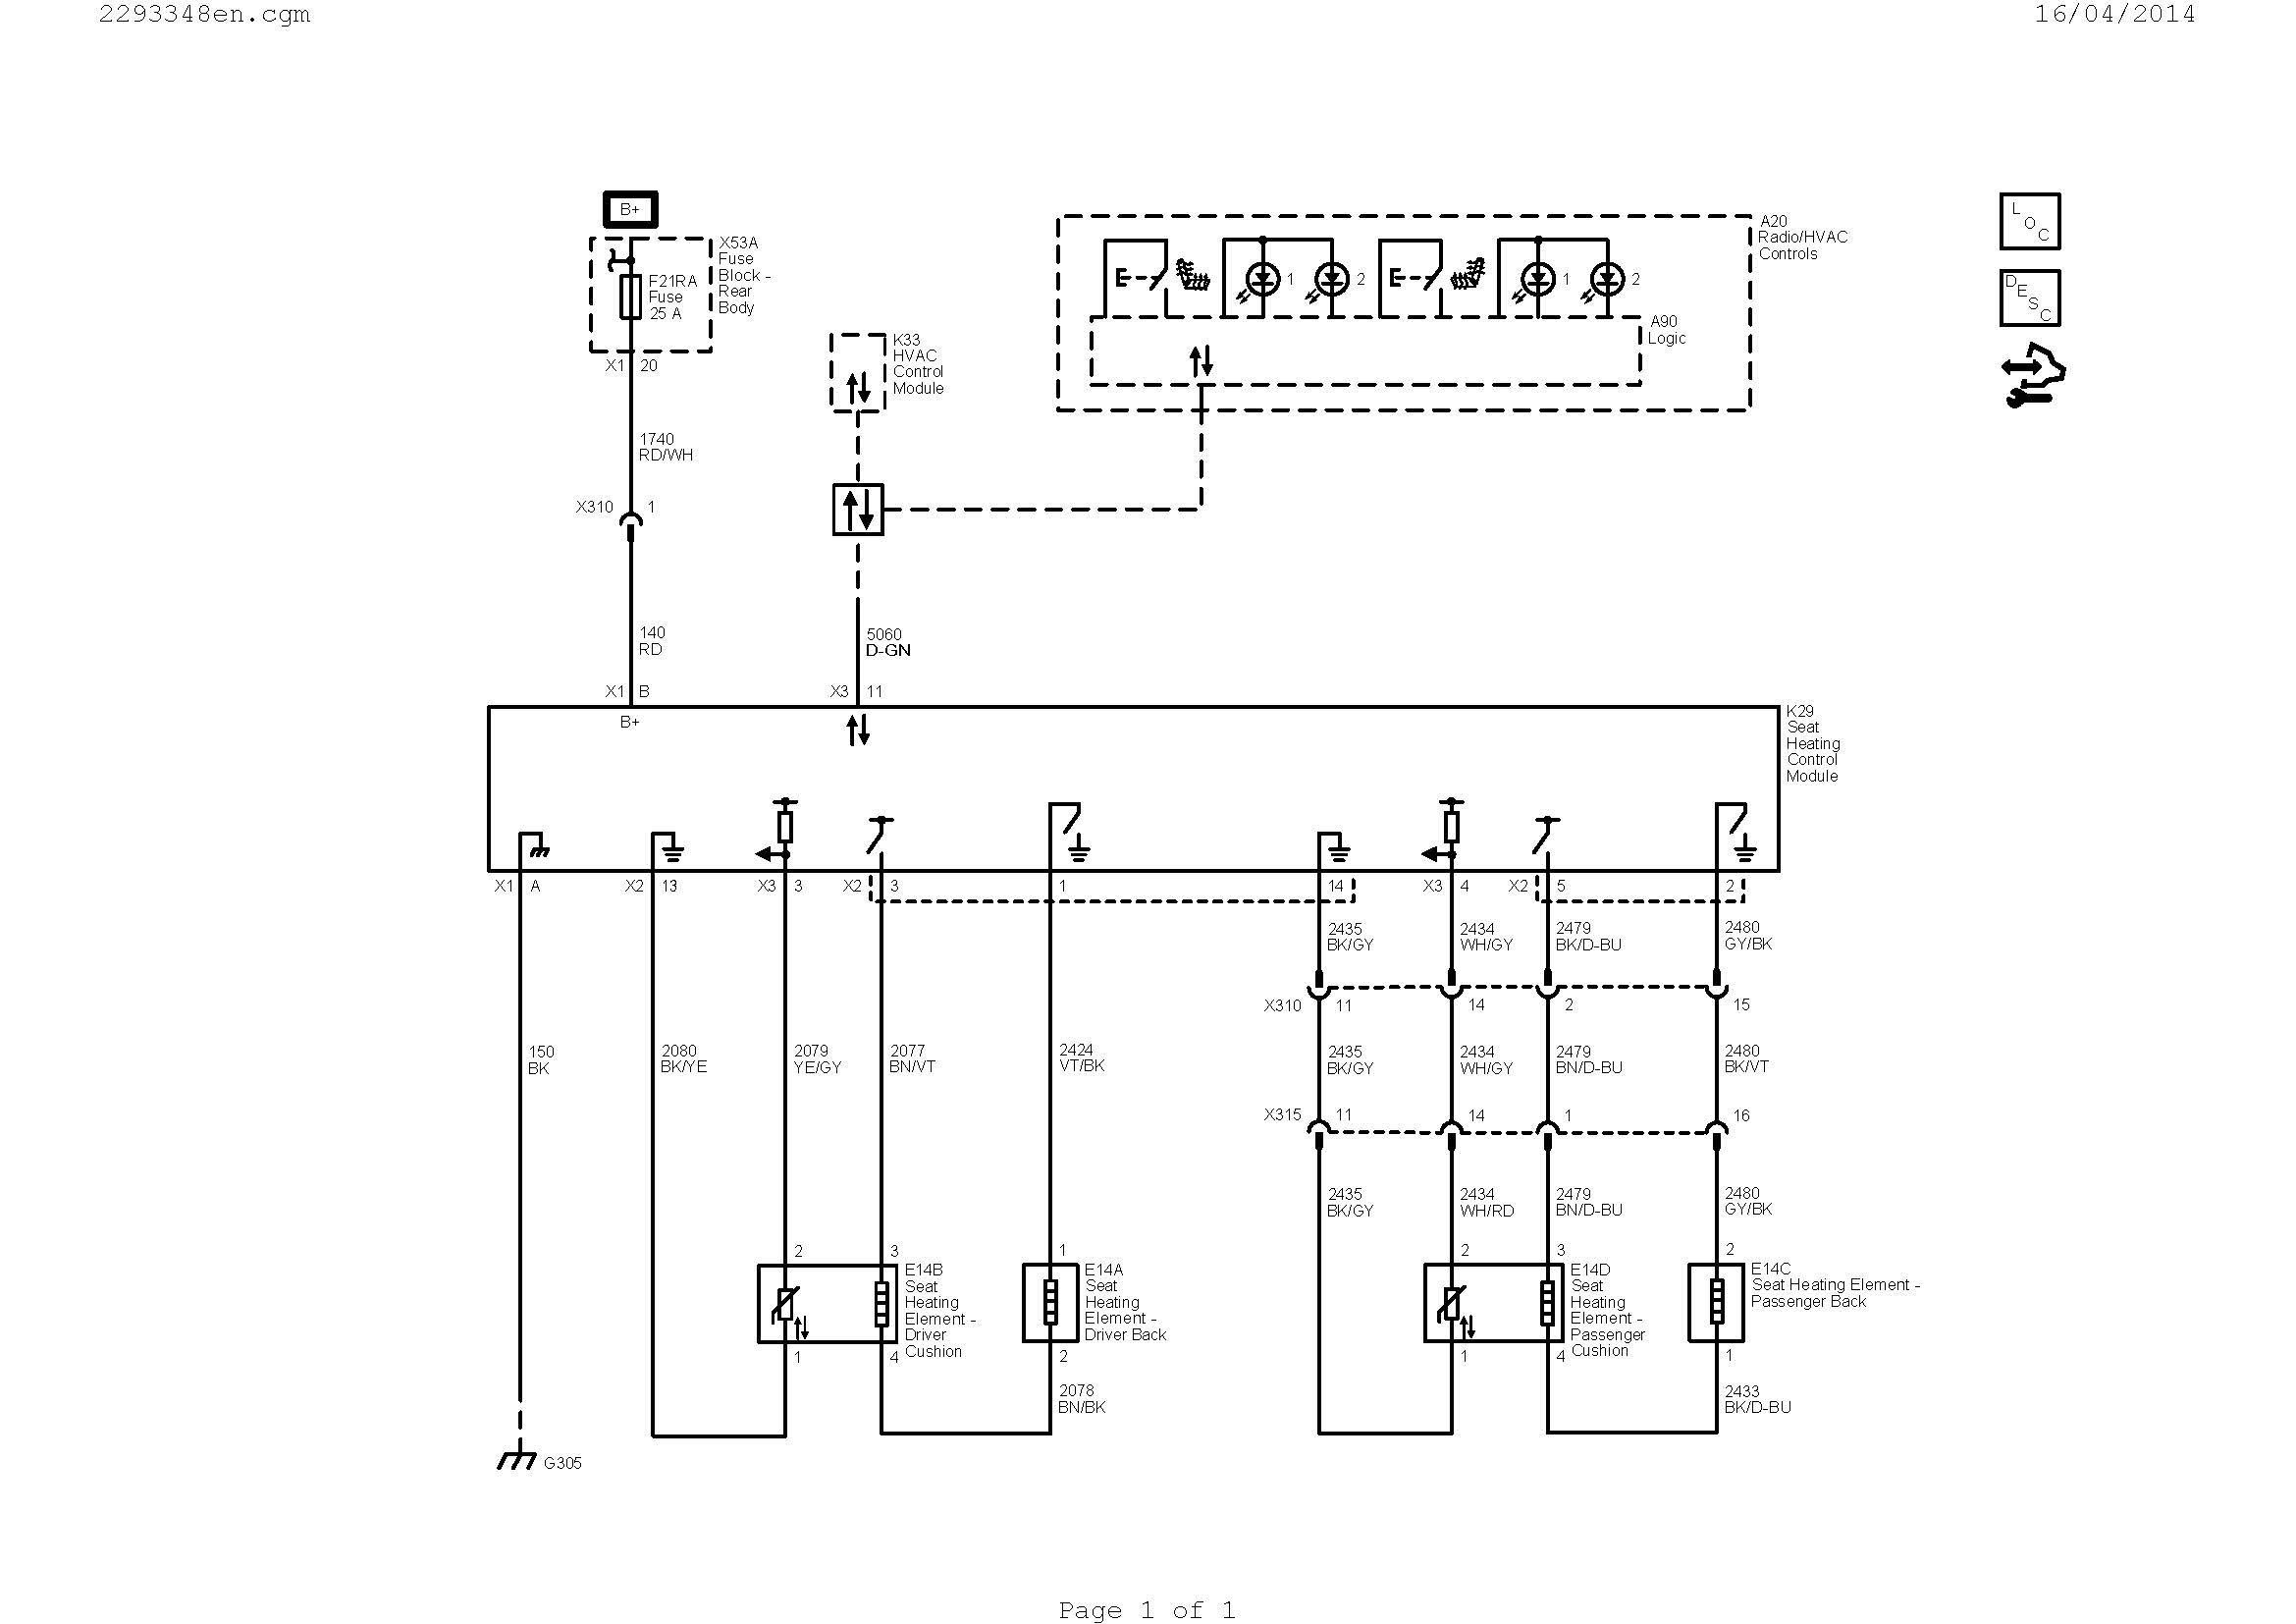 Pyle Hydra Wiring Diagram Gy 8321] Boss Car Stereo Wiring Harness Download Diagram Of Pyle Hydra Wiring Diagram